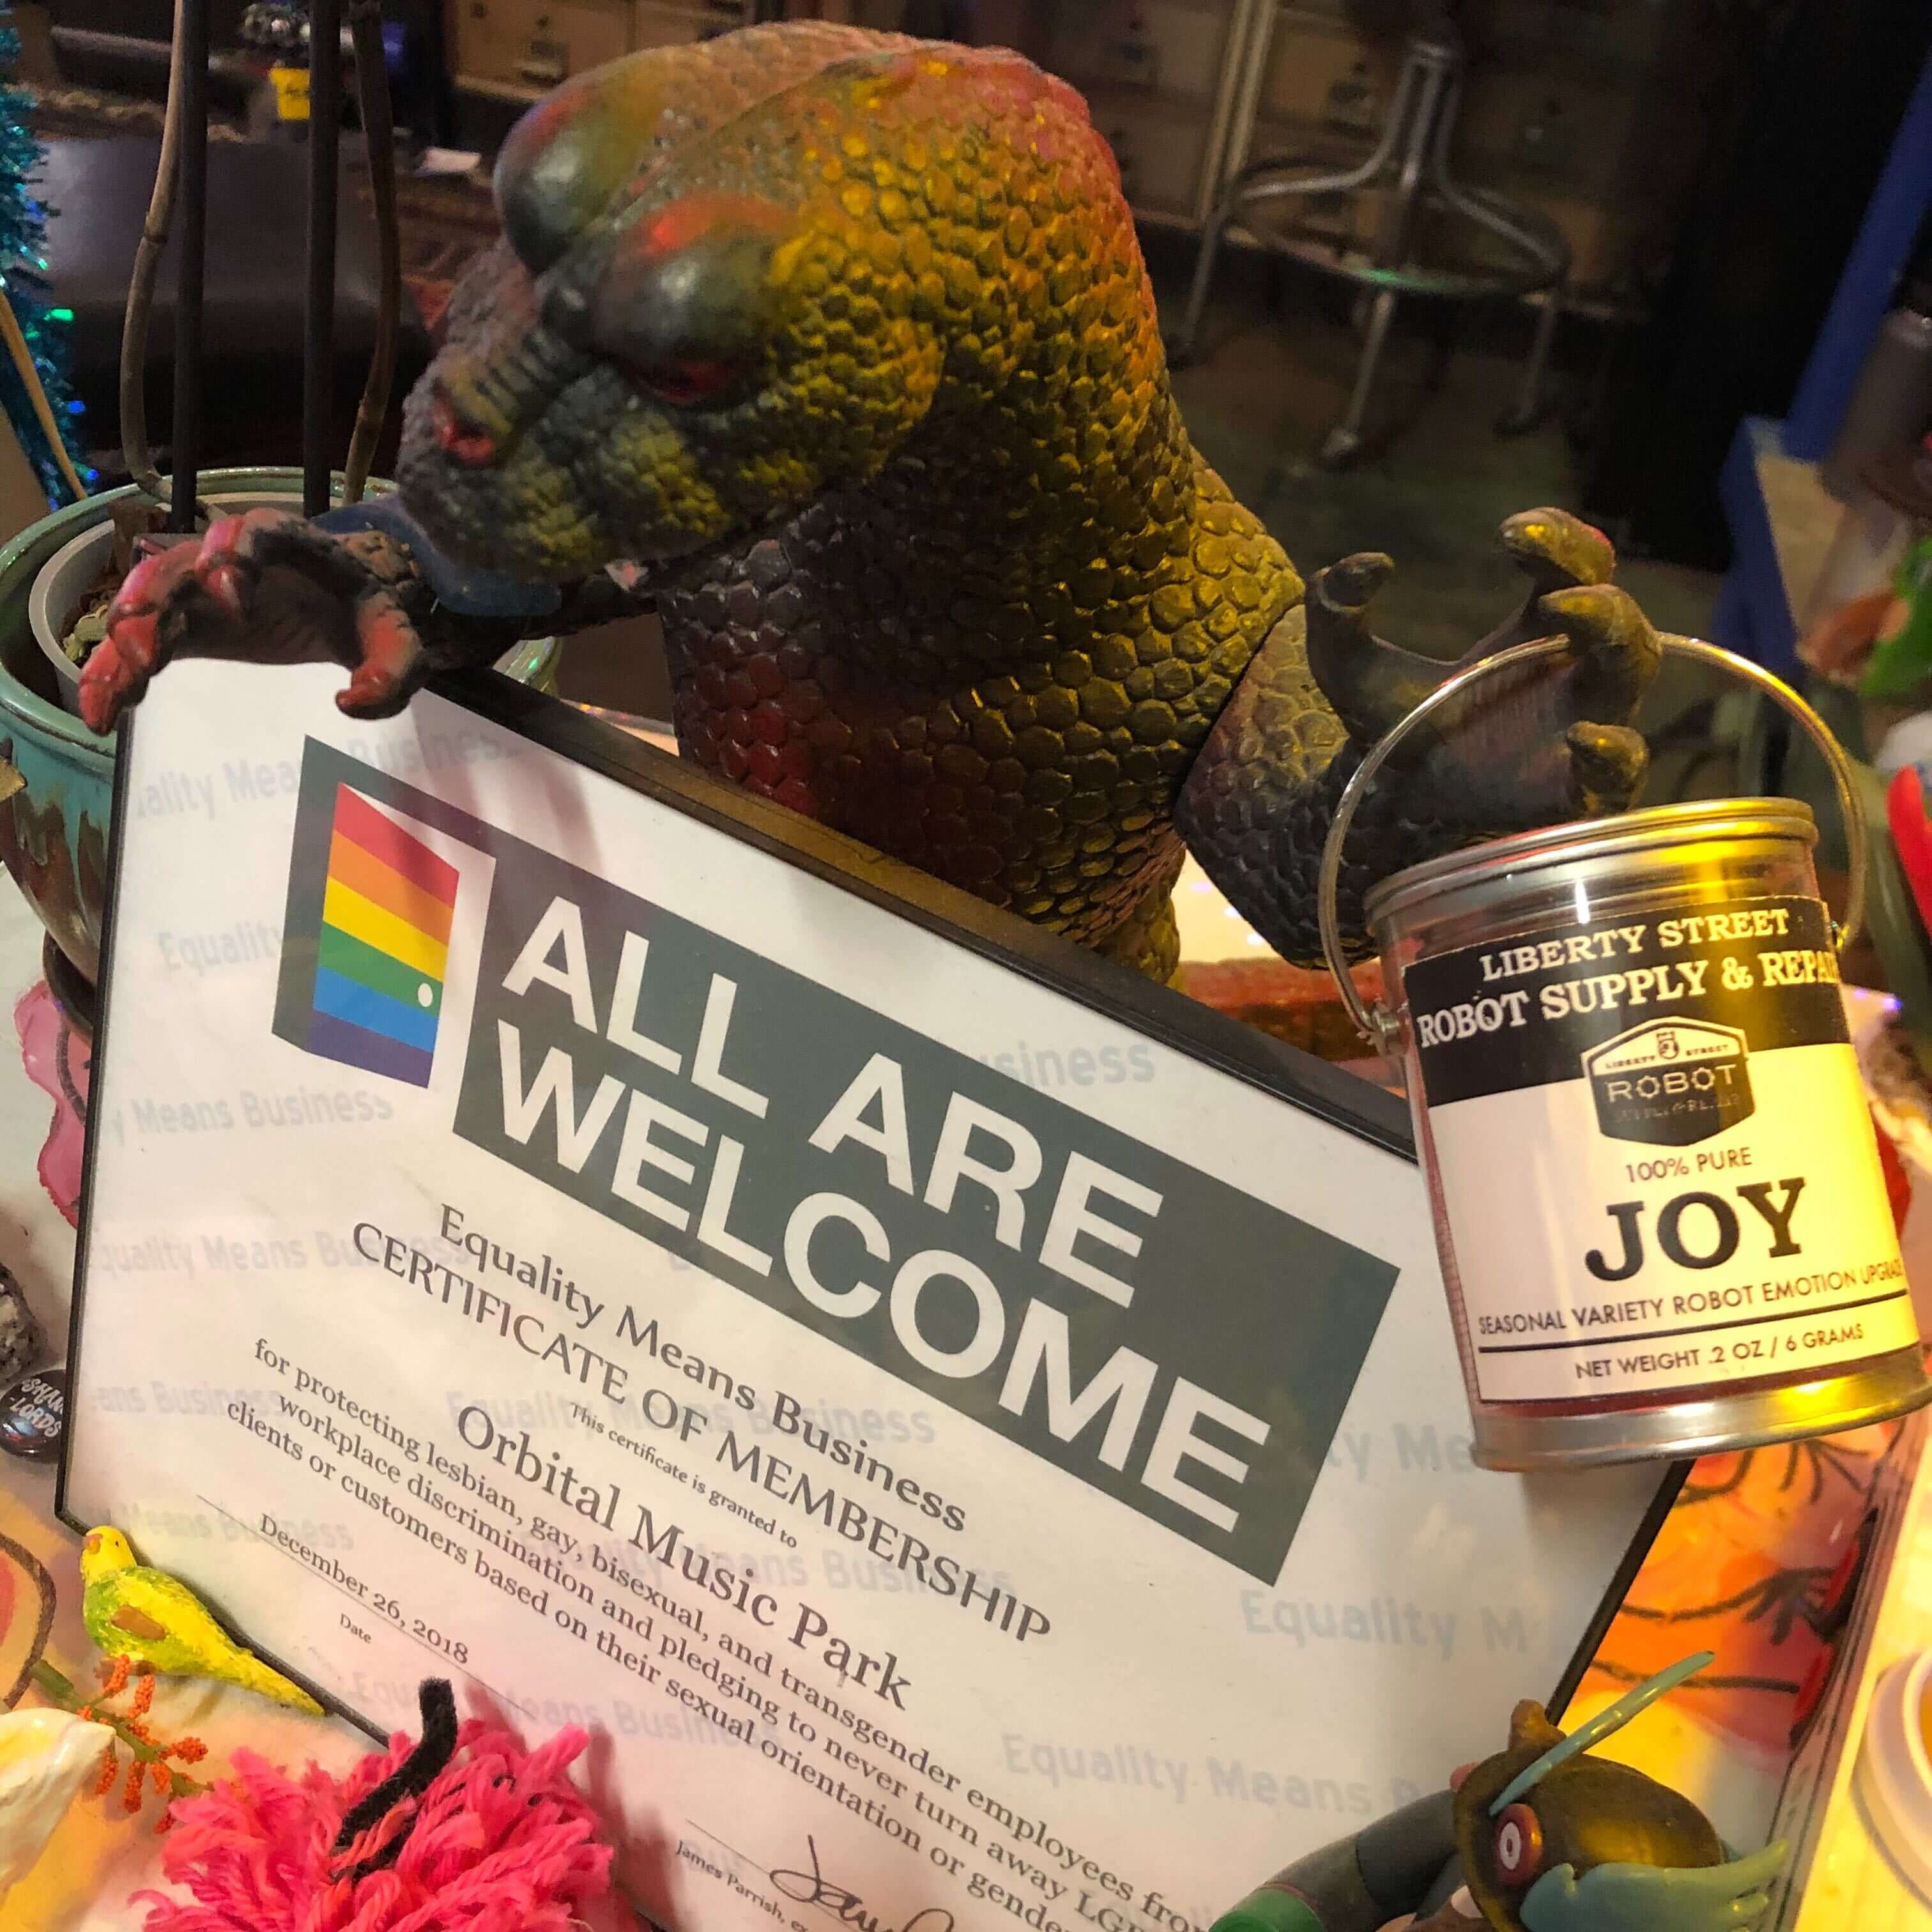 Plastic Godzilla proudly displays OMP's Equality Virginia certificate